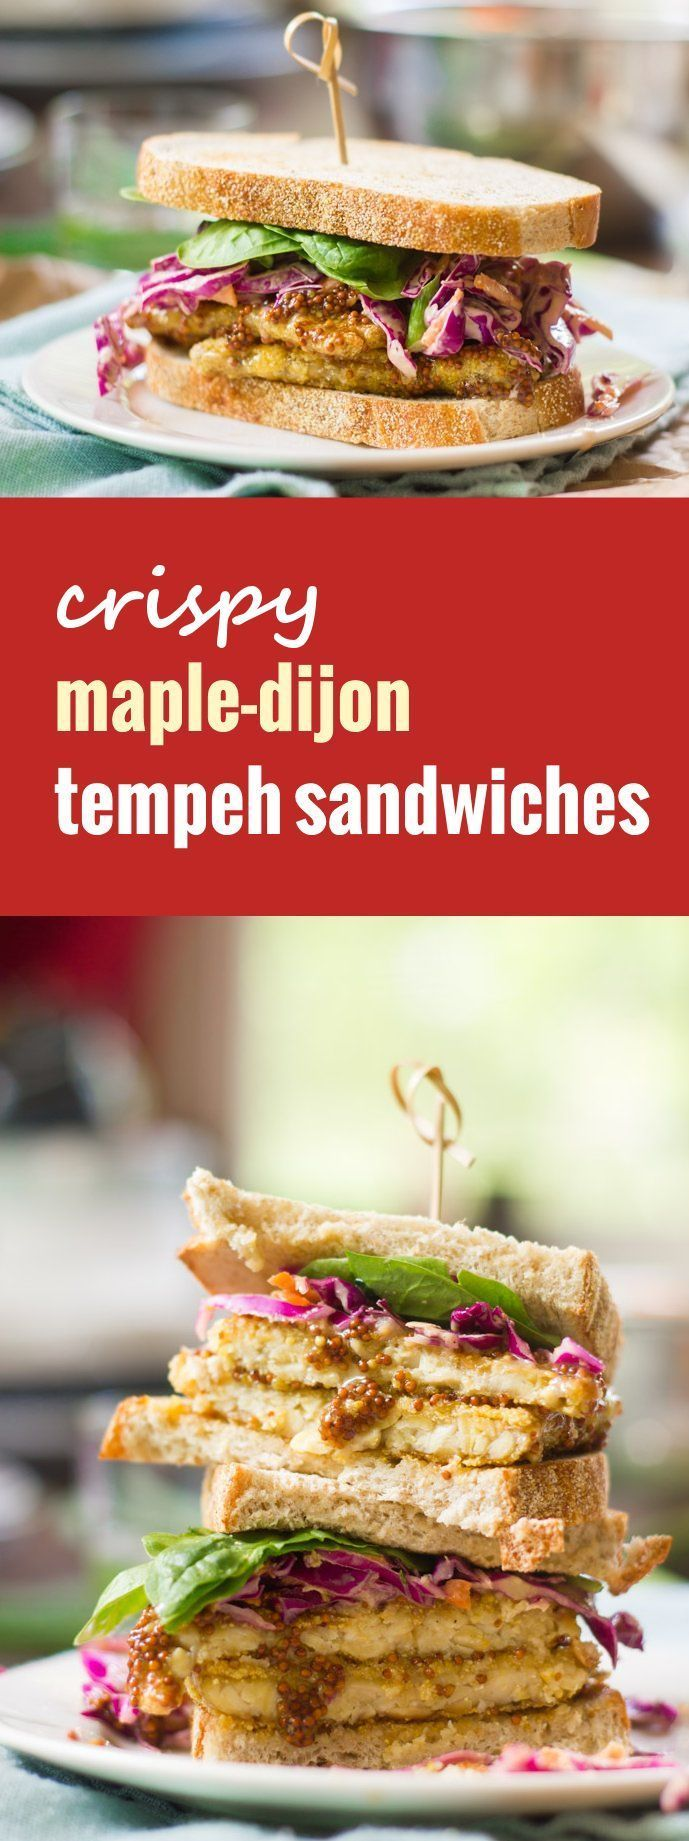 Crispy cornmeal crusted tempeh is drenched in sweet maple-Dijon sauce and stuffed into toasty bread with wasabi slaw to make these satisfying and scrumptious vegan tempeh sandwiches.